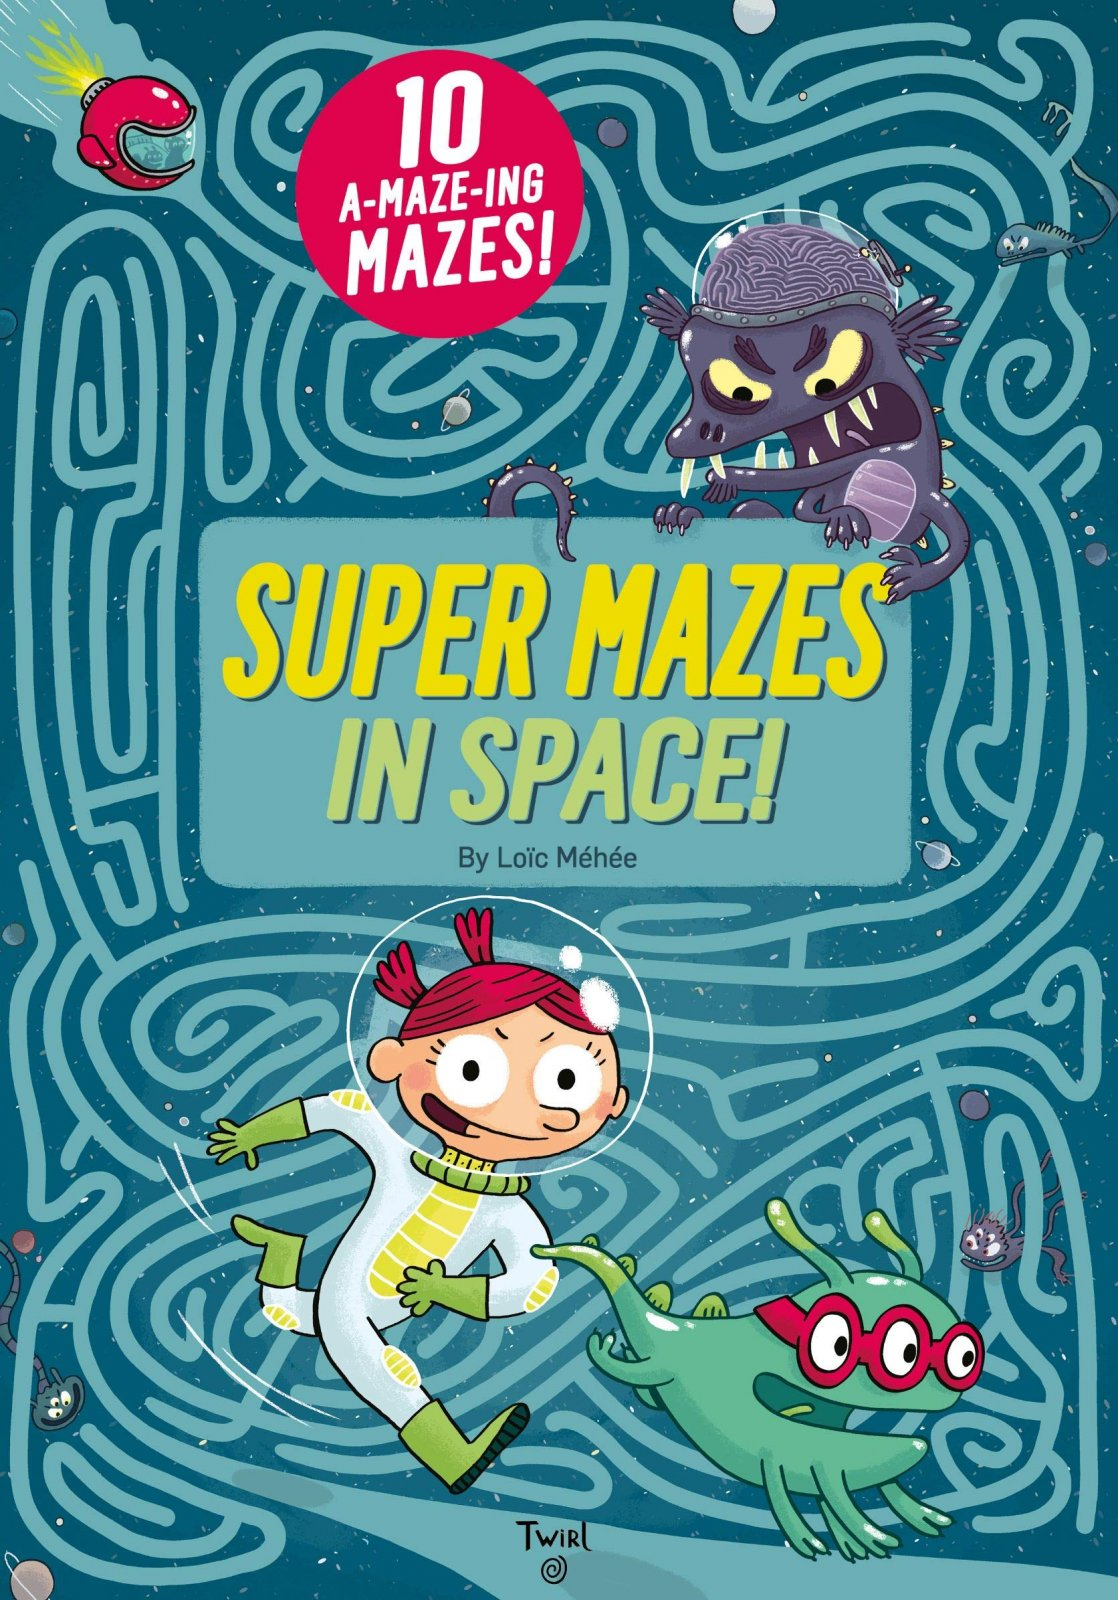 Super Mazes in Space by Loic Mehee